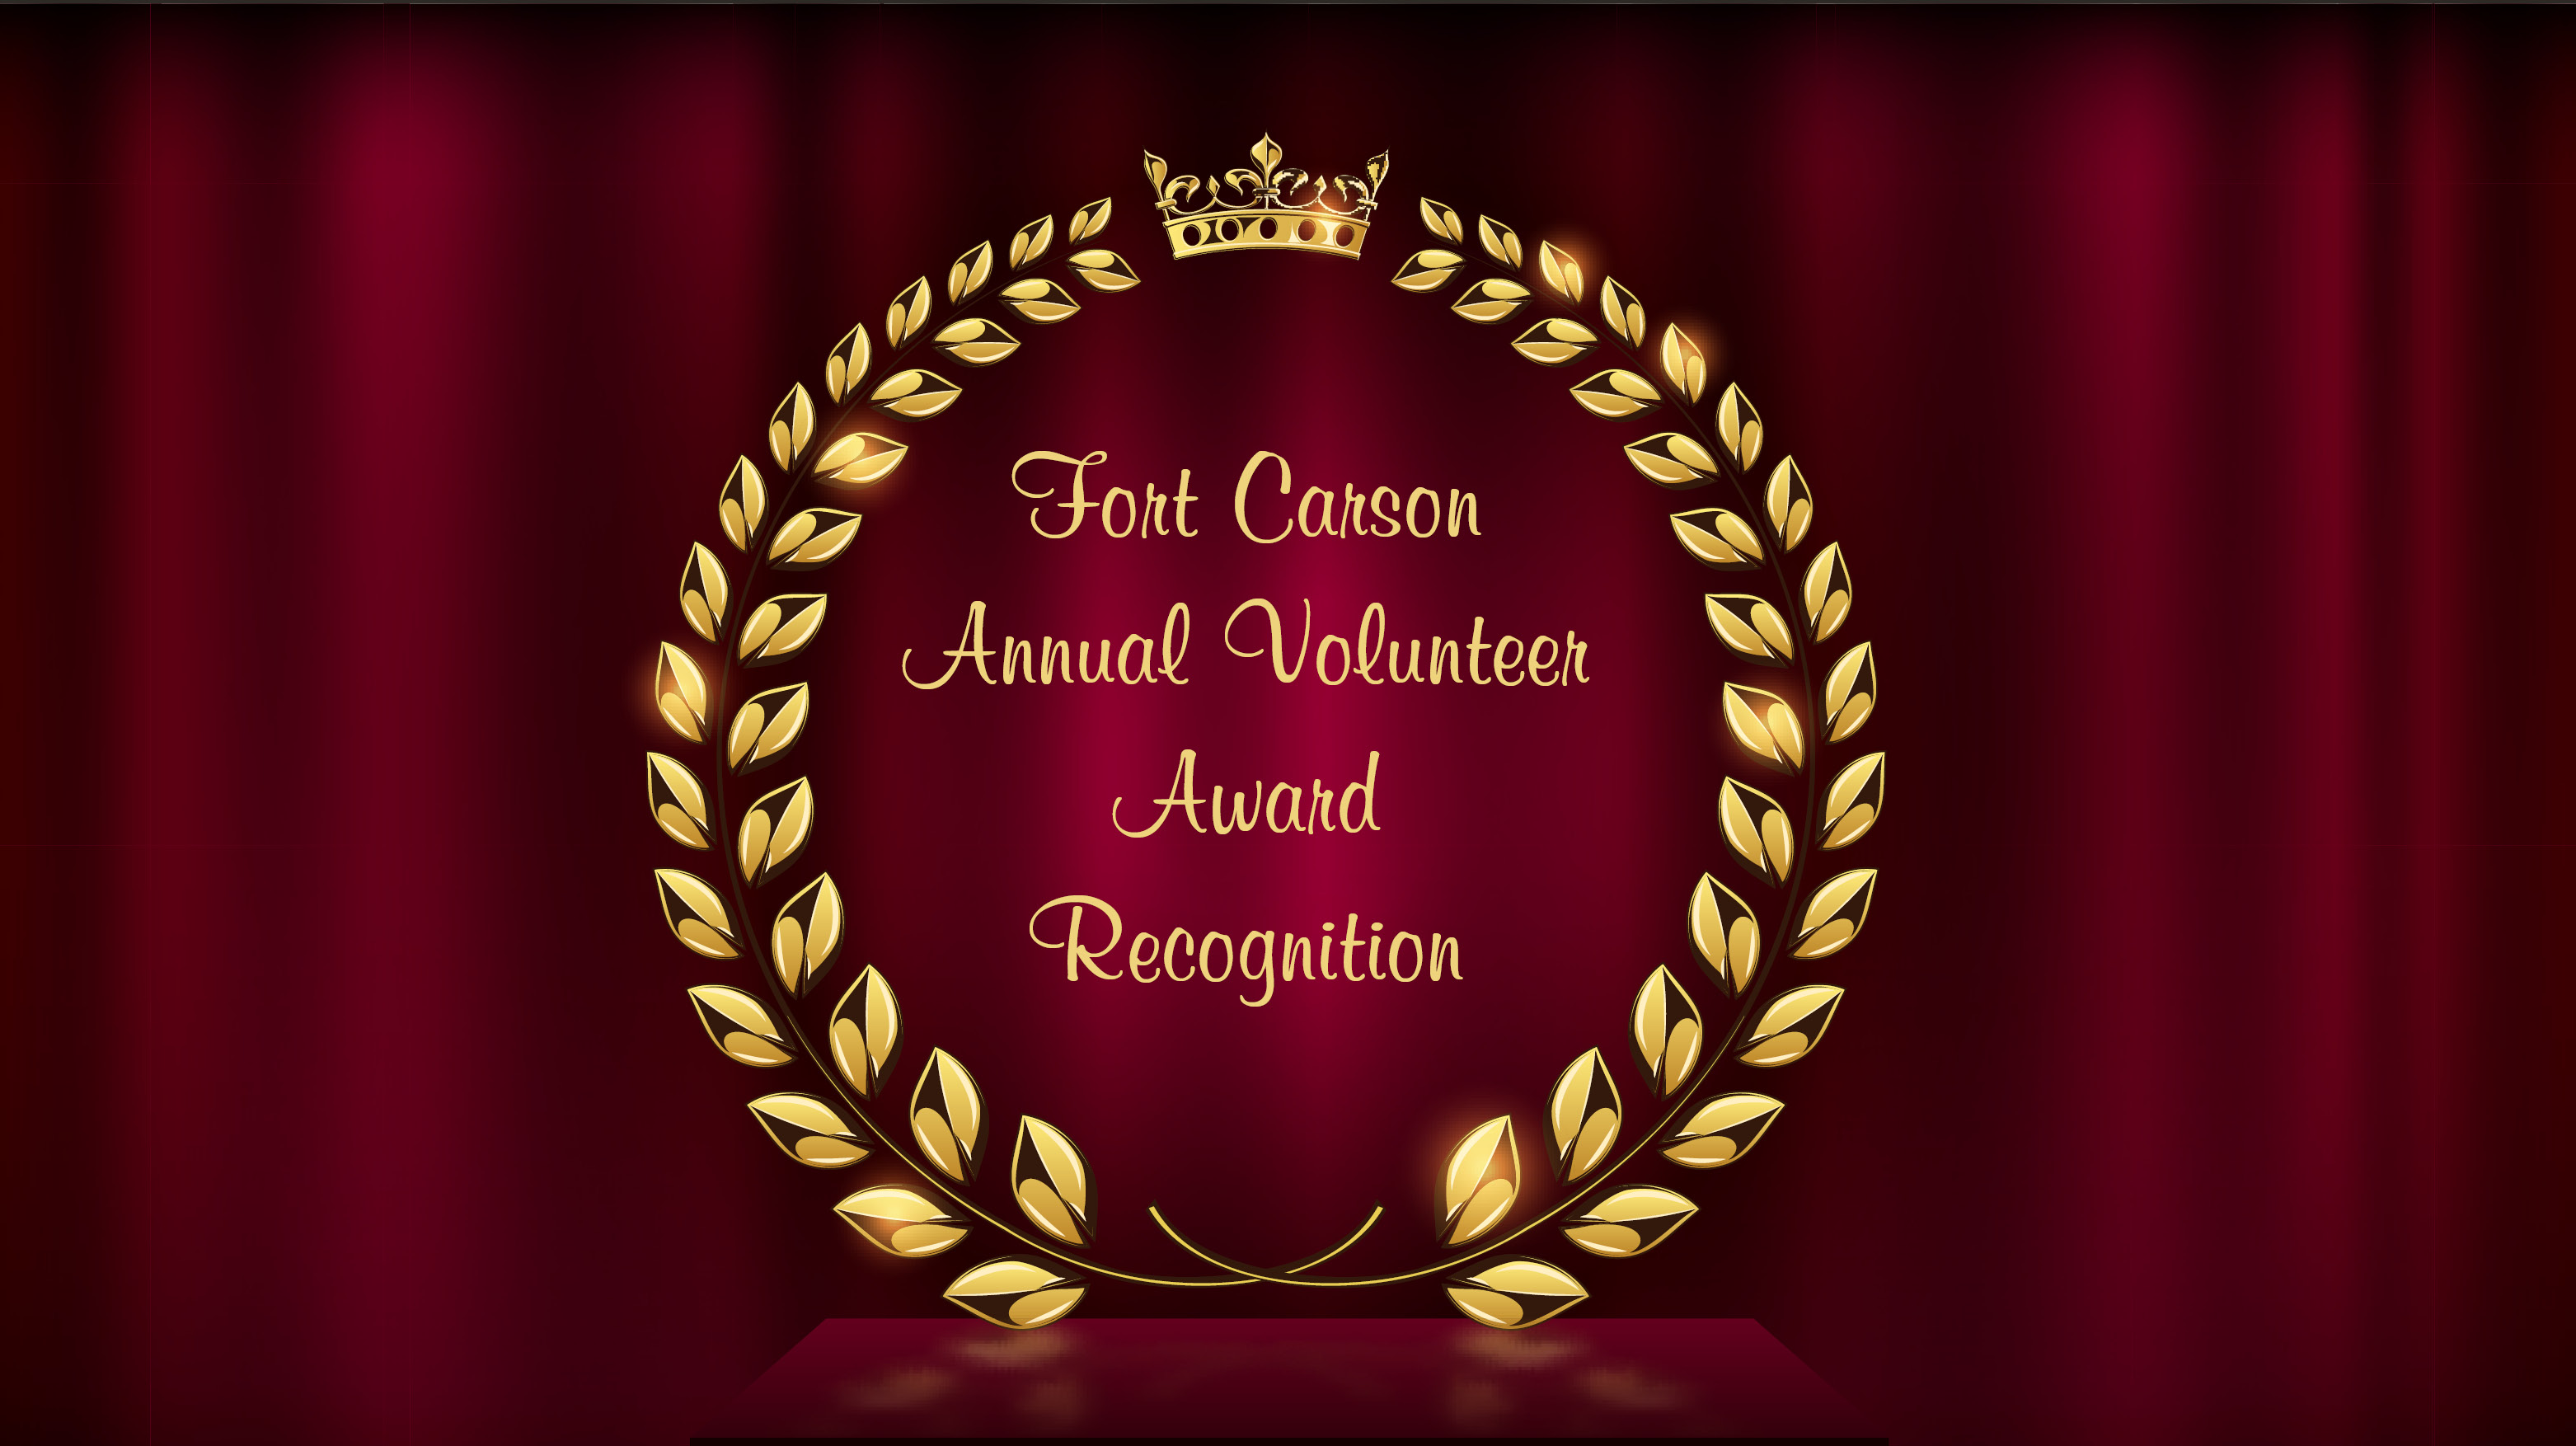 Fort Carson Annual Volunteer Award Recognition & 1st QTR  Volunteer of the Quarter Recognition